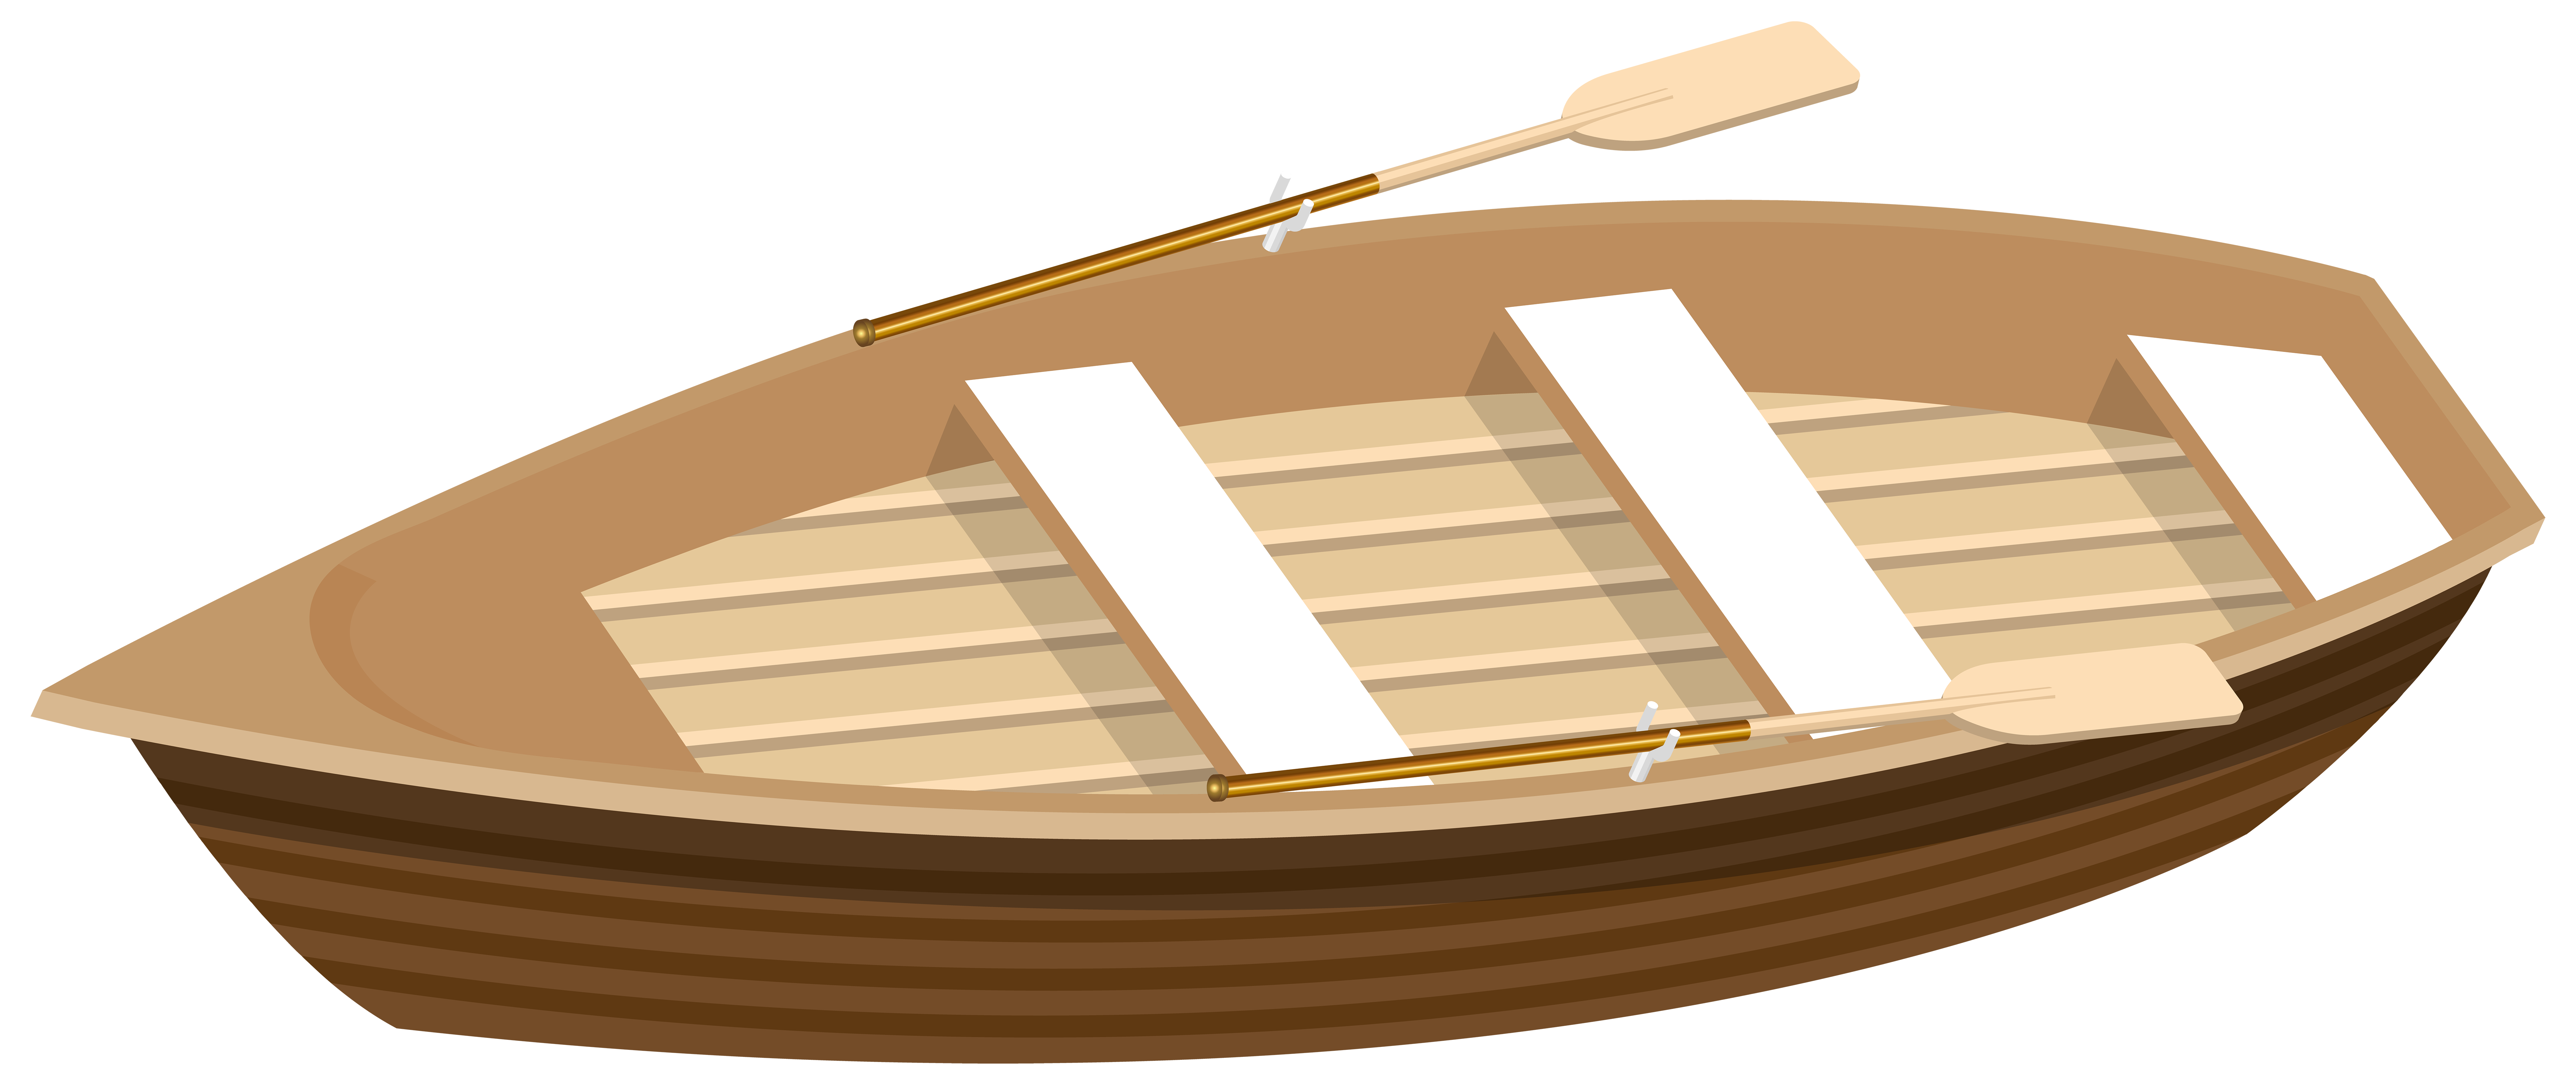 Boating clipart. Wooden boat transparent png